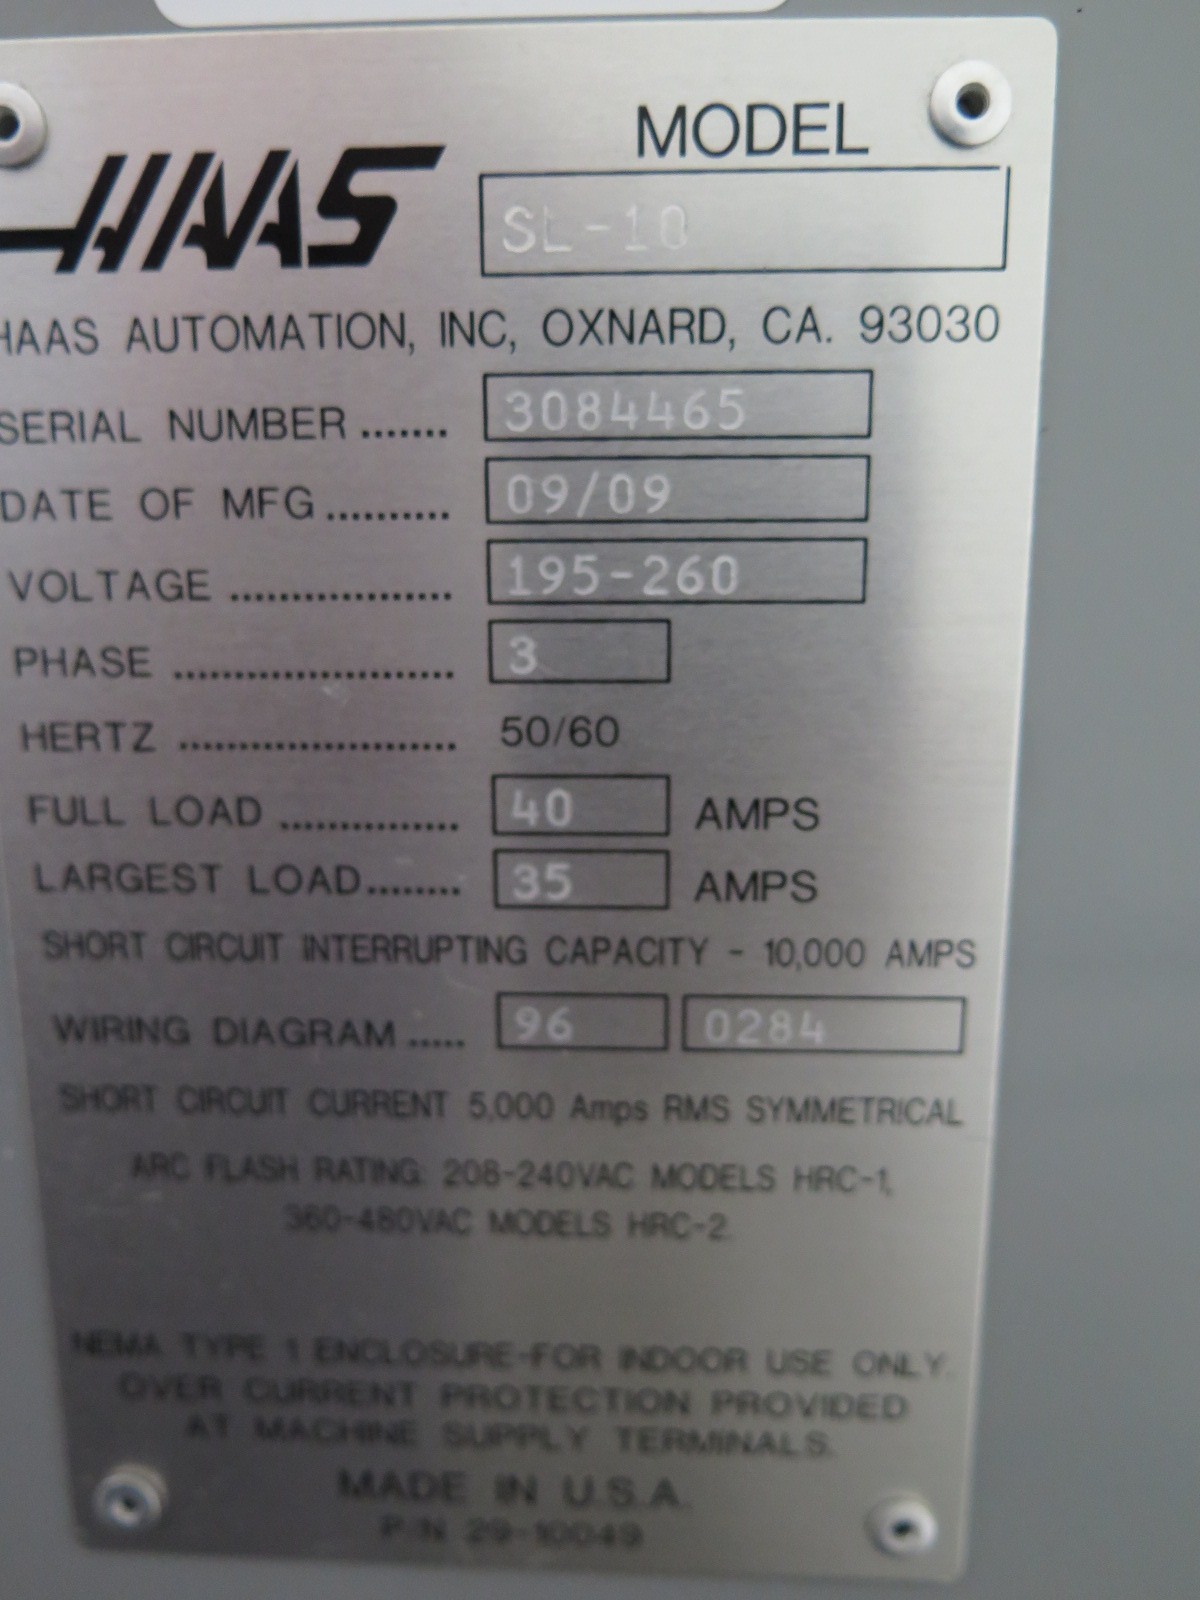 2009 Haas SL-10 CNC Turning Center s/n 3084465 w/ Haas ... Haas Tool Setter Wiring Diagram on